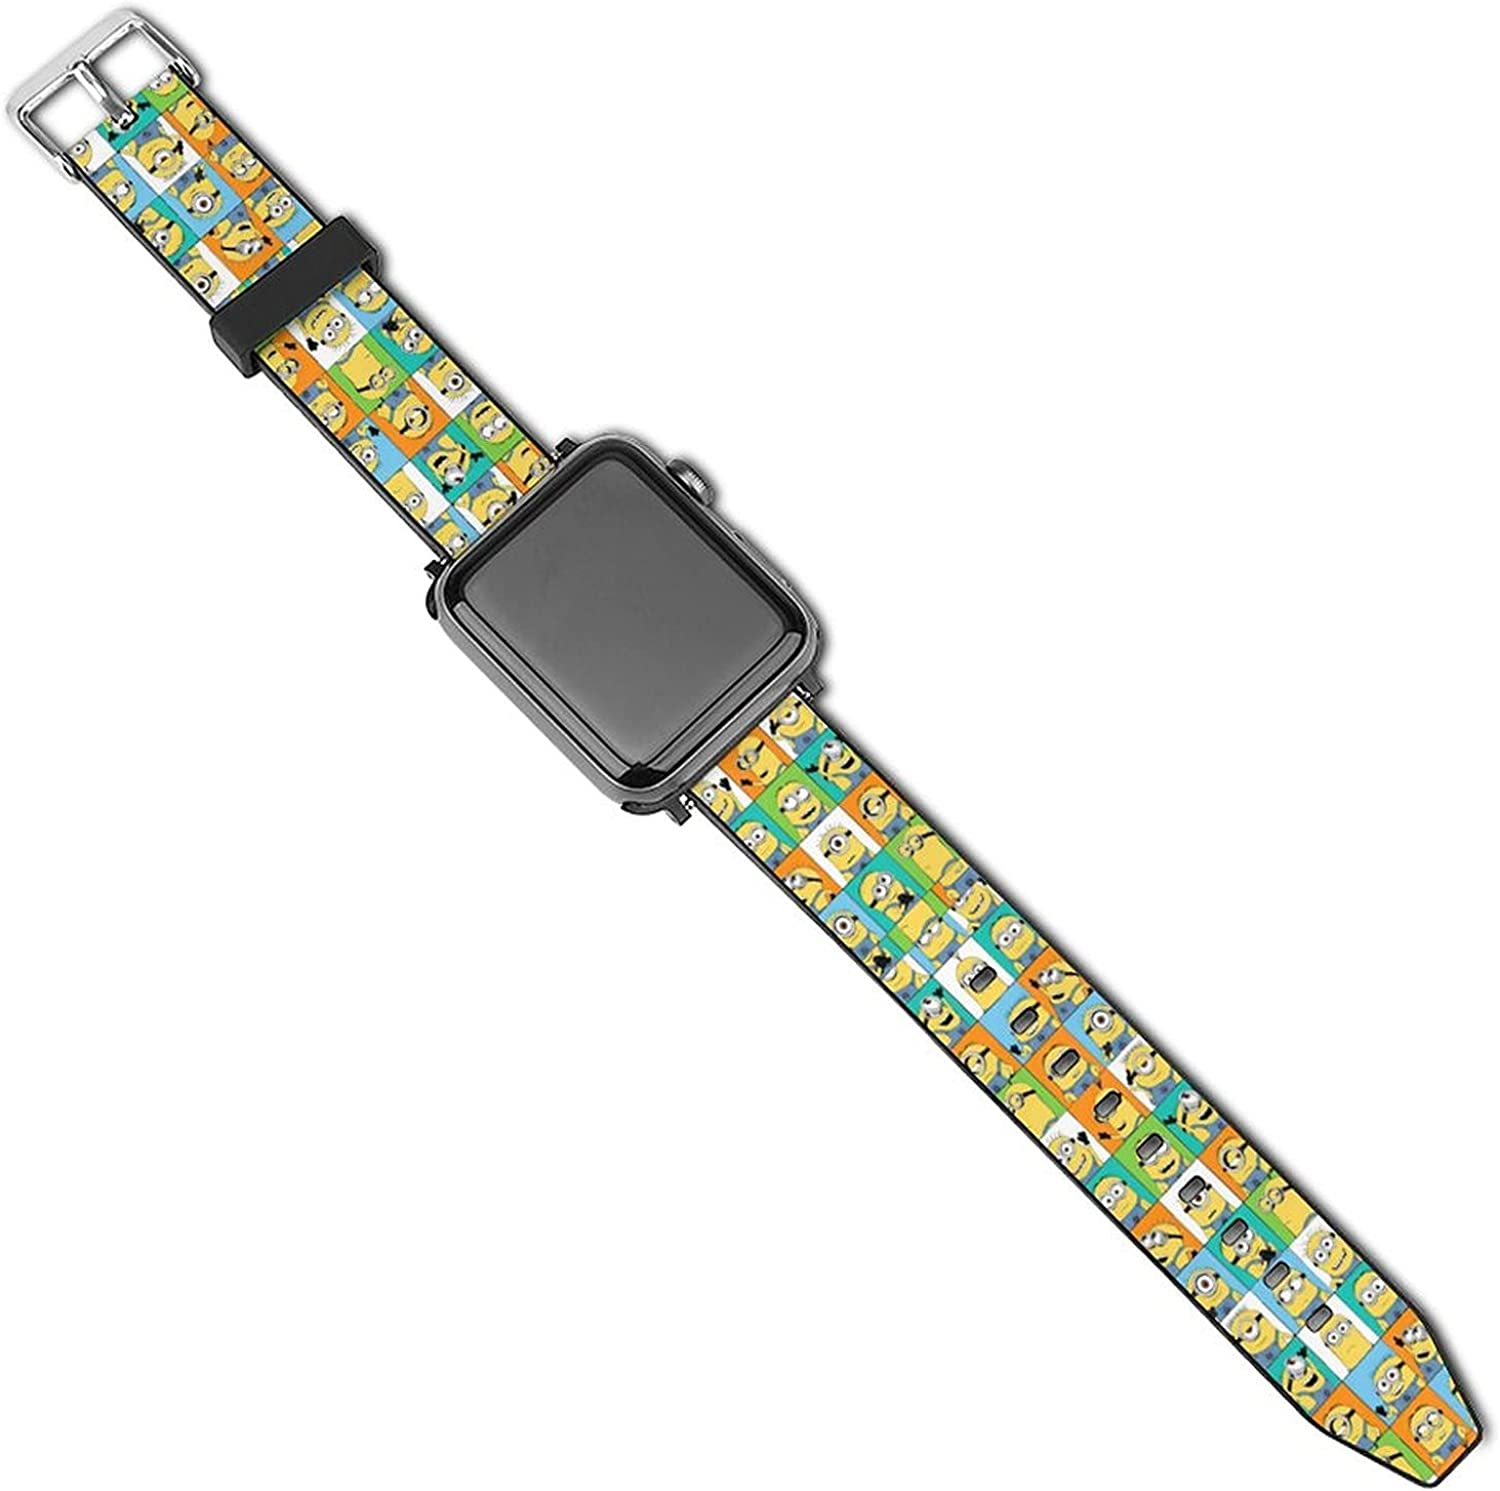 Minio-ns Soft Silicone Apple Watch Bands Strap Compatible With IWatch 5/4/3/2/1 for Women Man Replacement Classic Clasp Apple Watch Strap 38mm /40mm 42mm/ 44mm